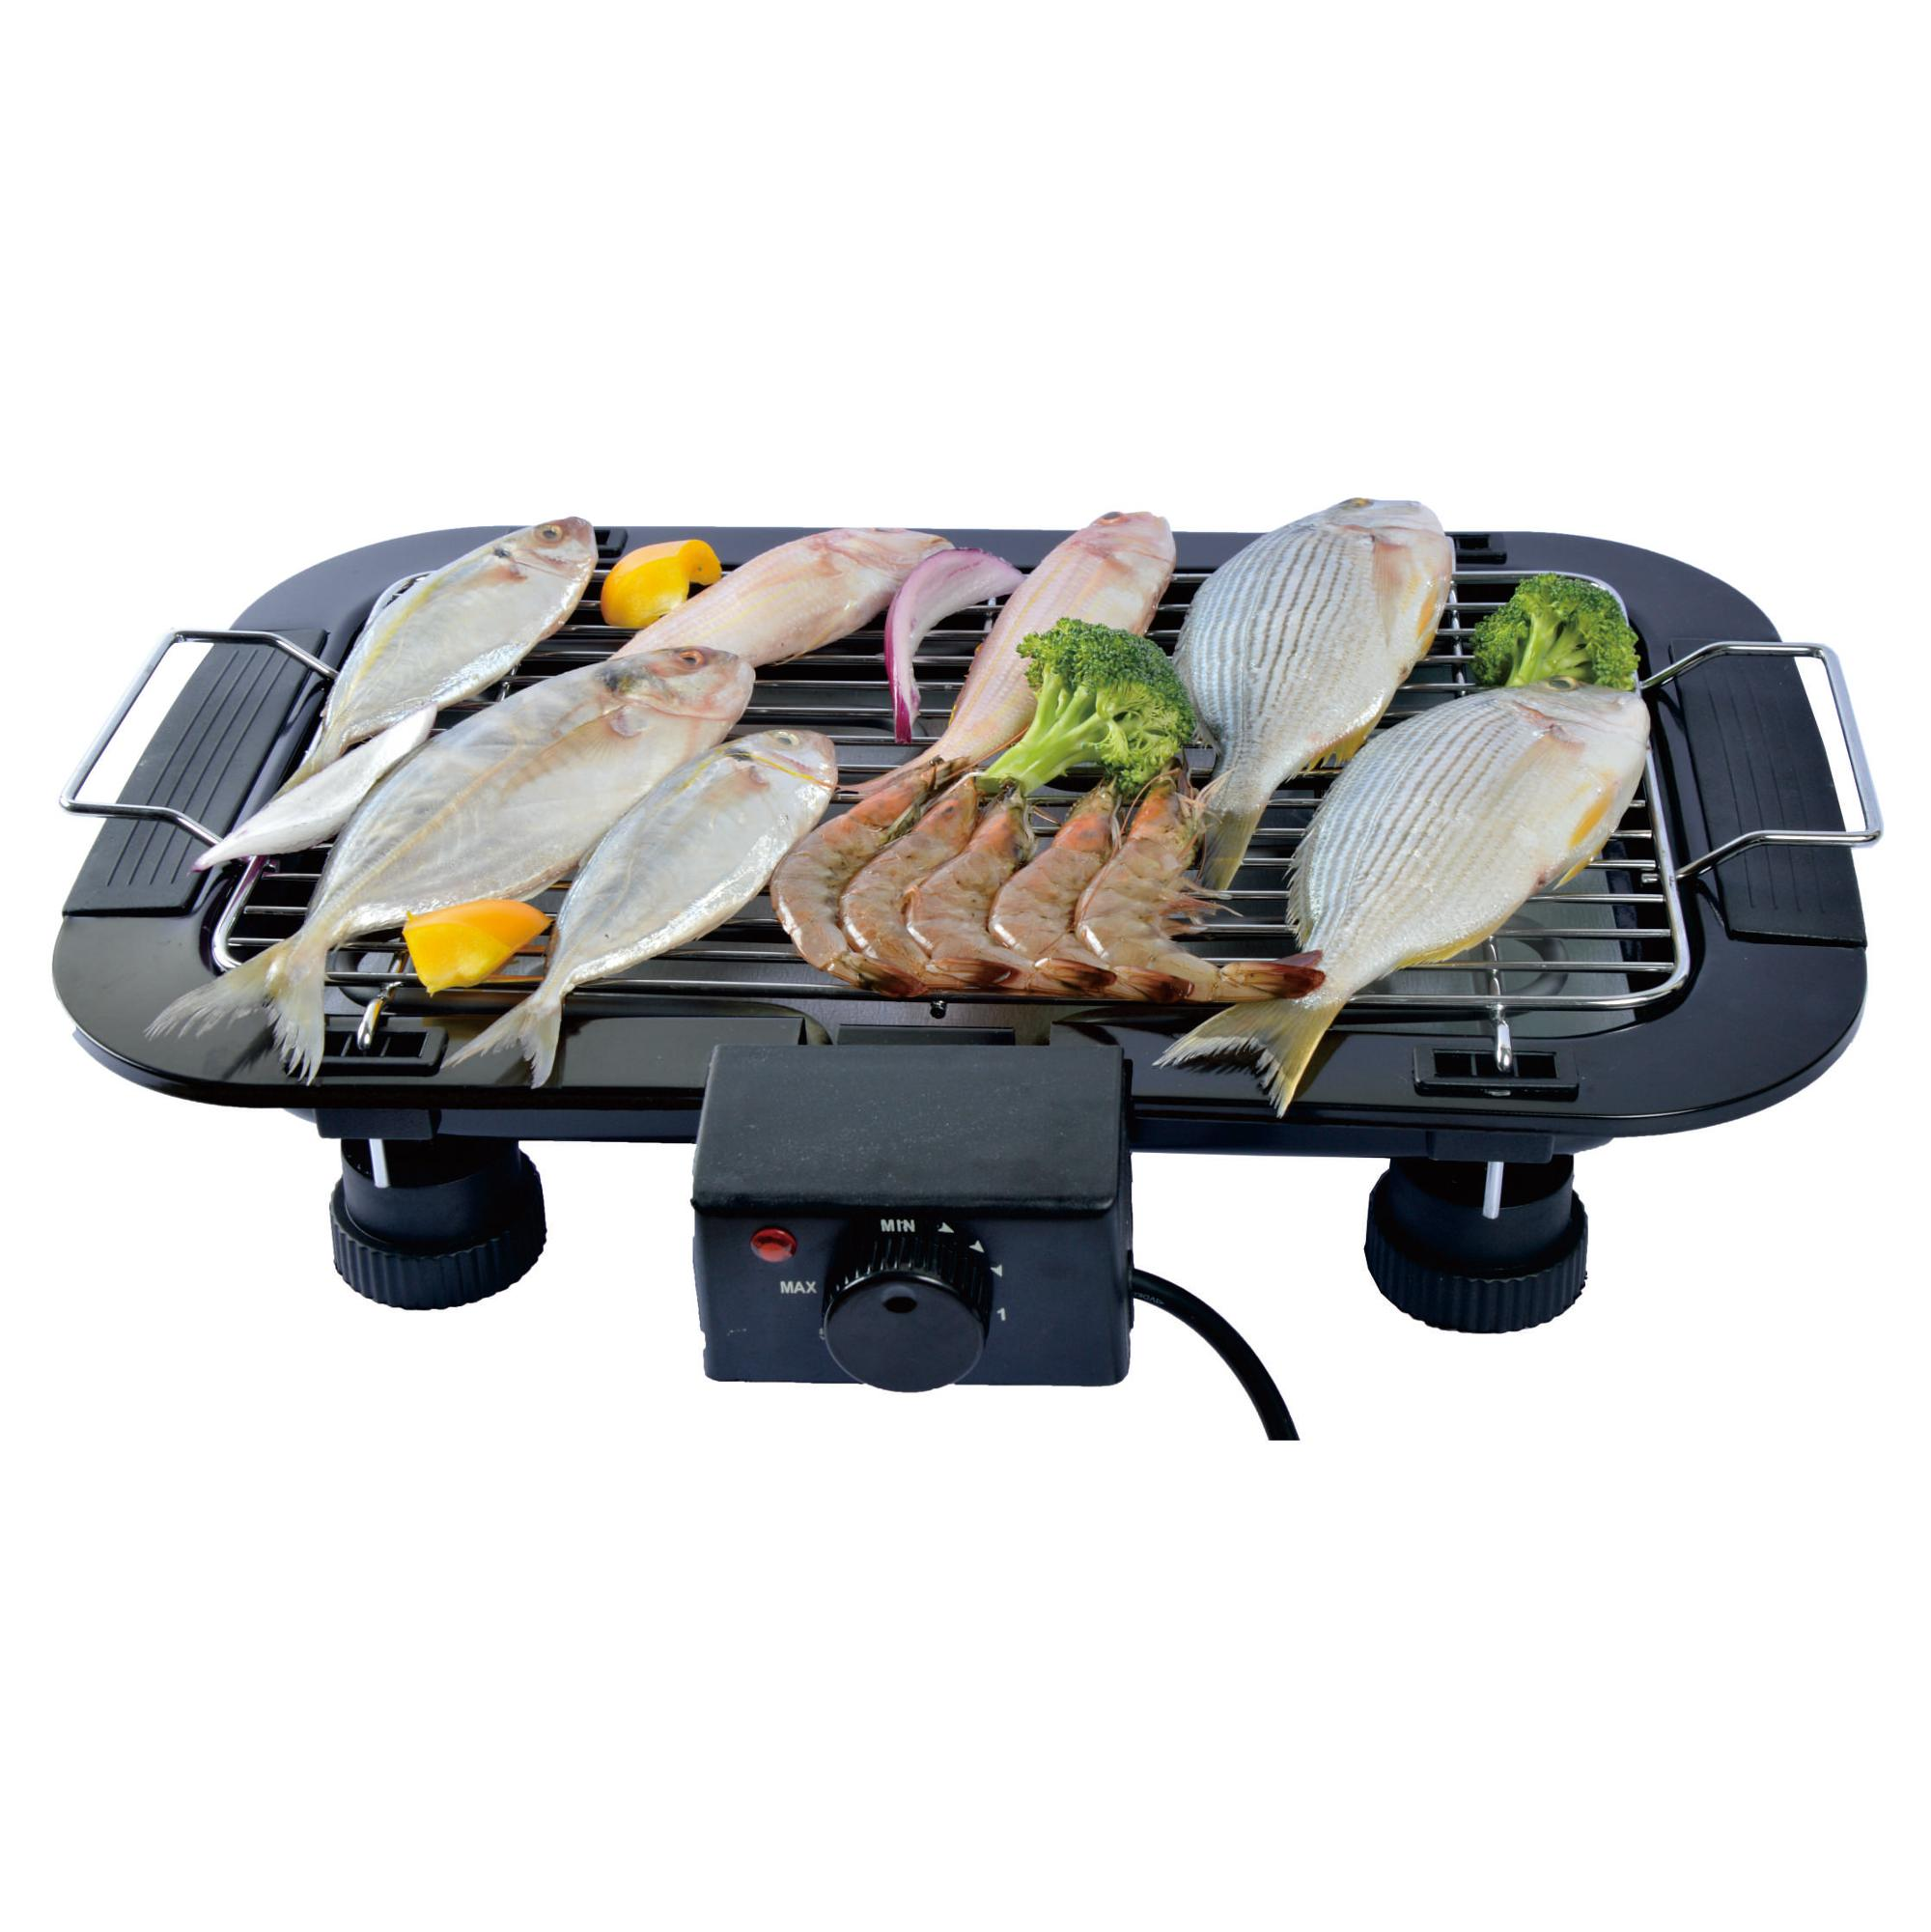 Indoor Tabletop Thermostat Grill Height Adjustable Electric BBQ Grill Electric Barbecue Grill